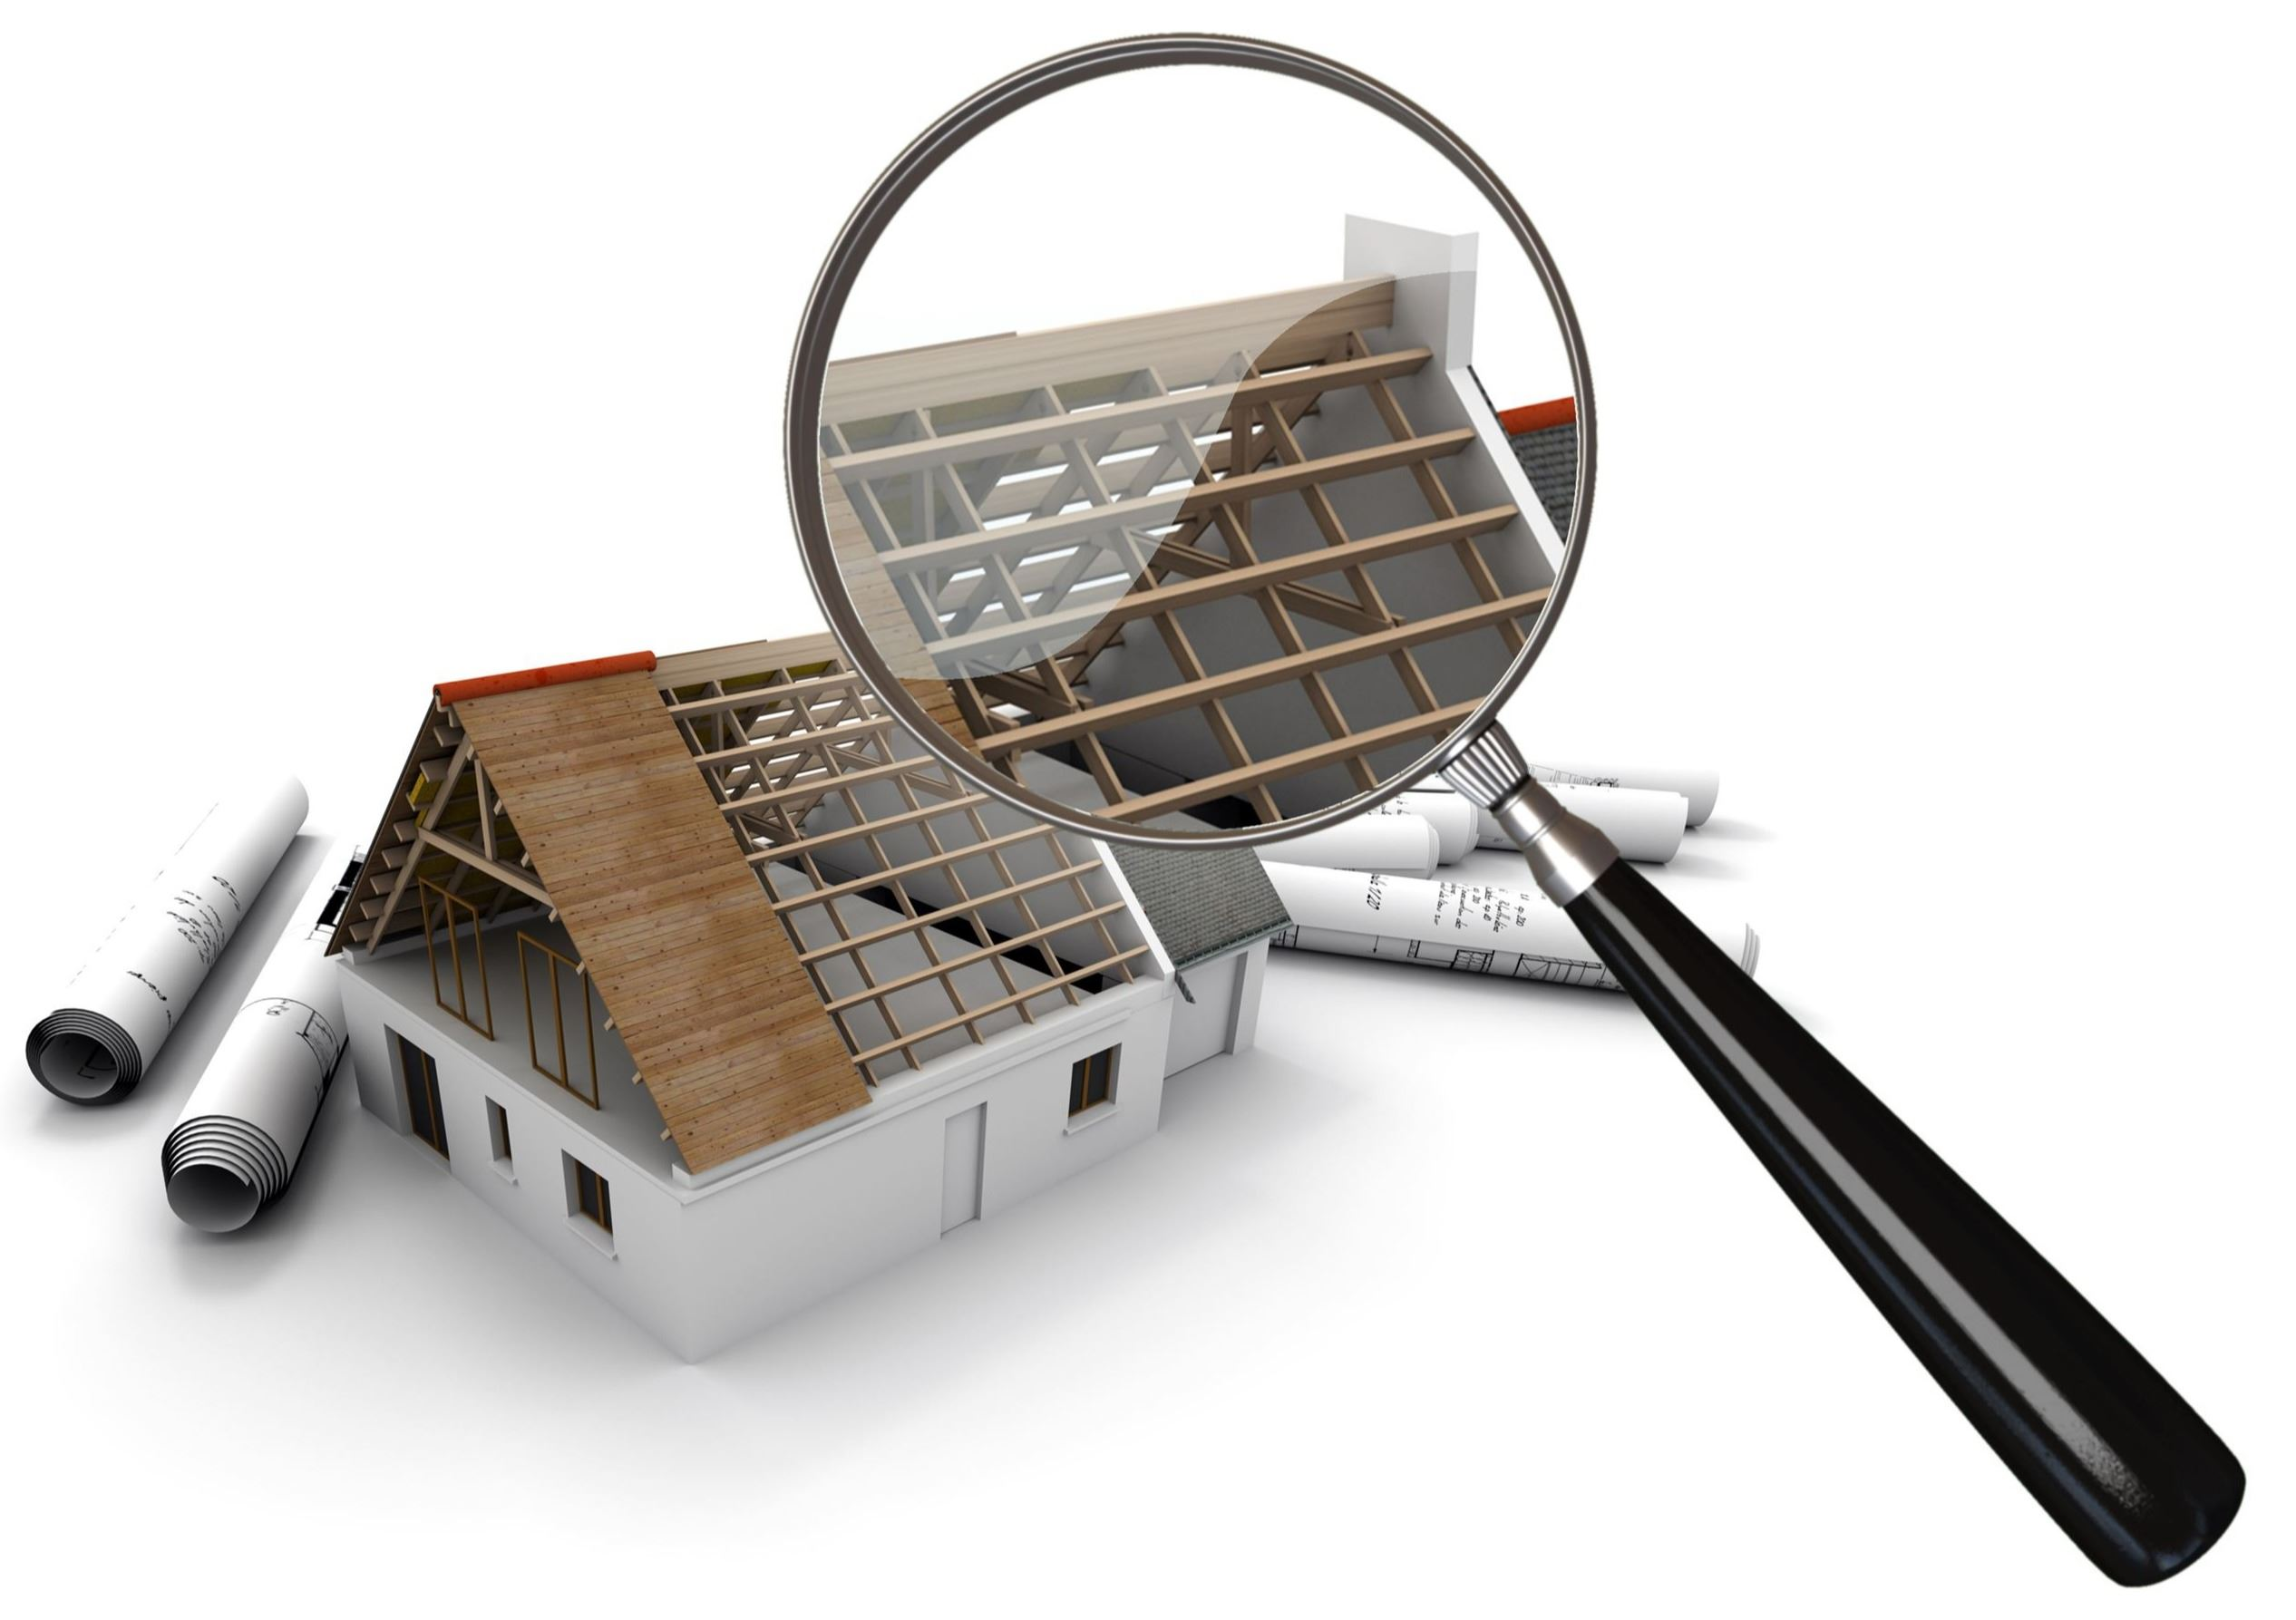 Image of a house under construction, surrounded by plans, under a magnifying glass